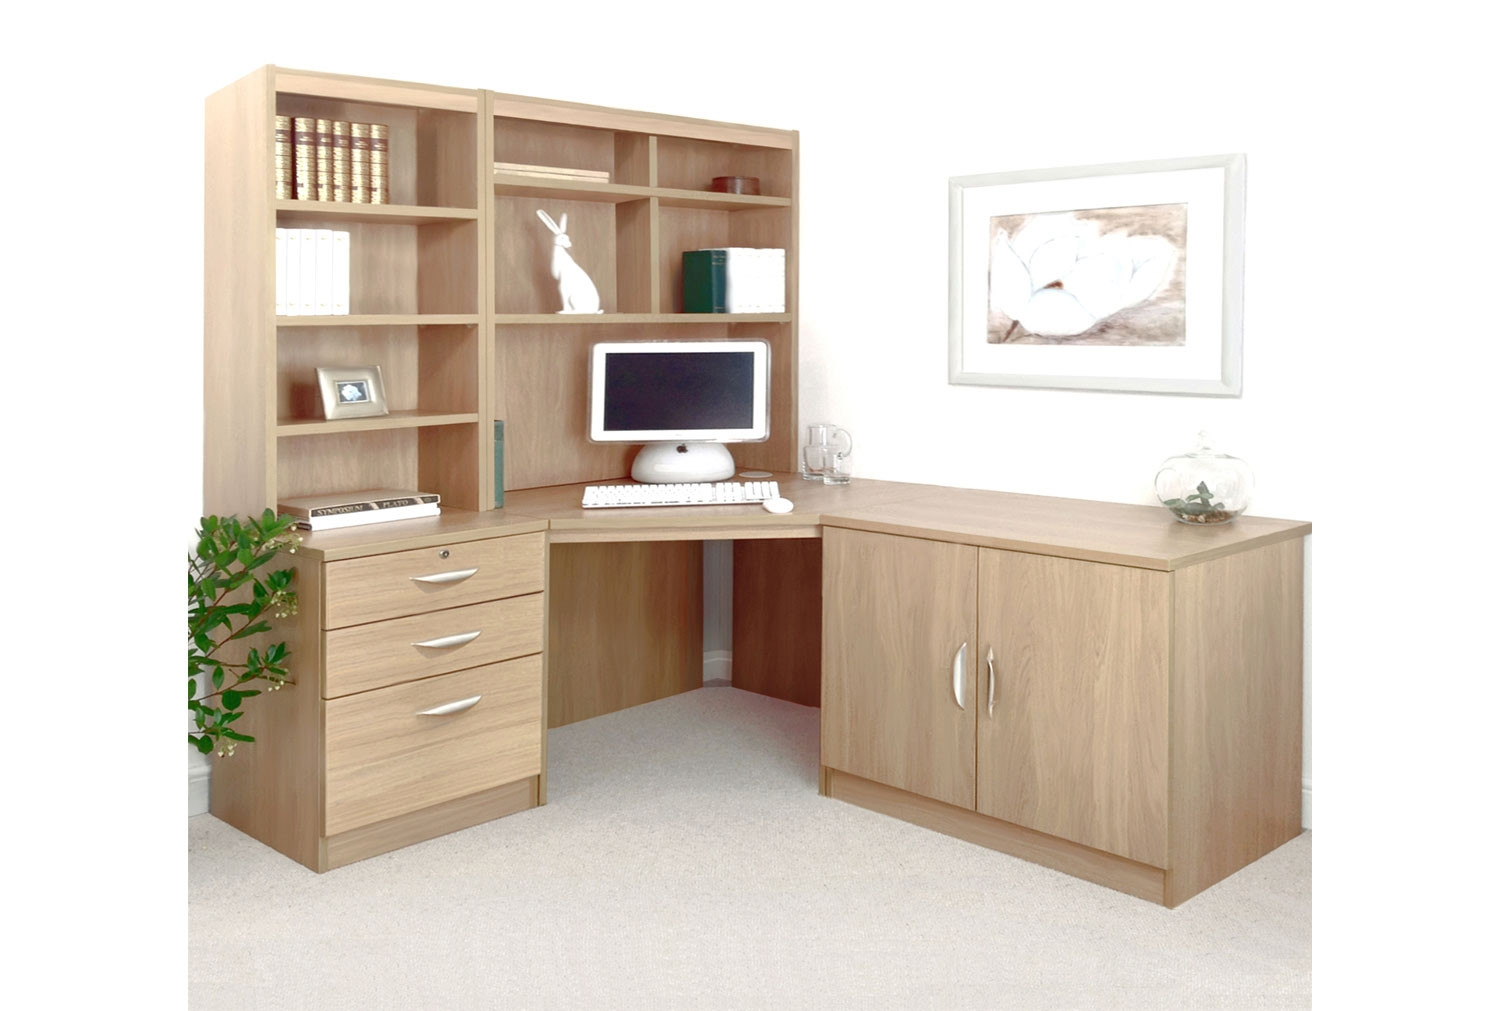 Small Office Corner Desk Set With 3 Drawers Cupboard Hutch Bookcases Sandstone Furniture At Work